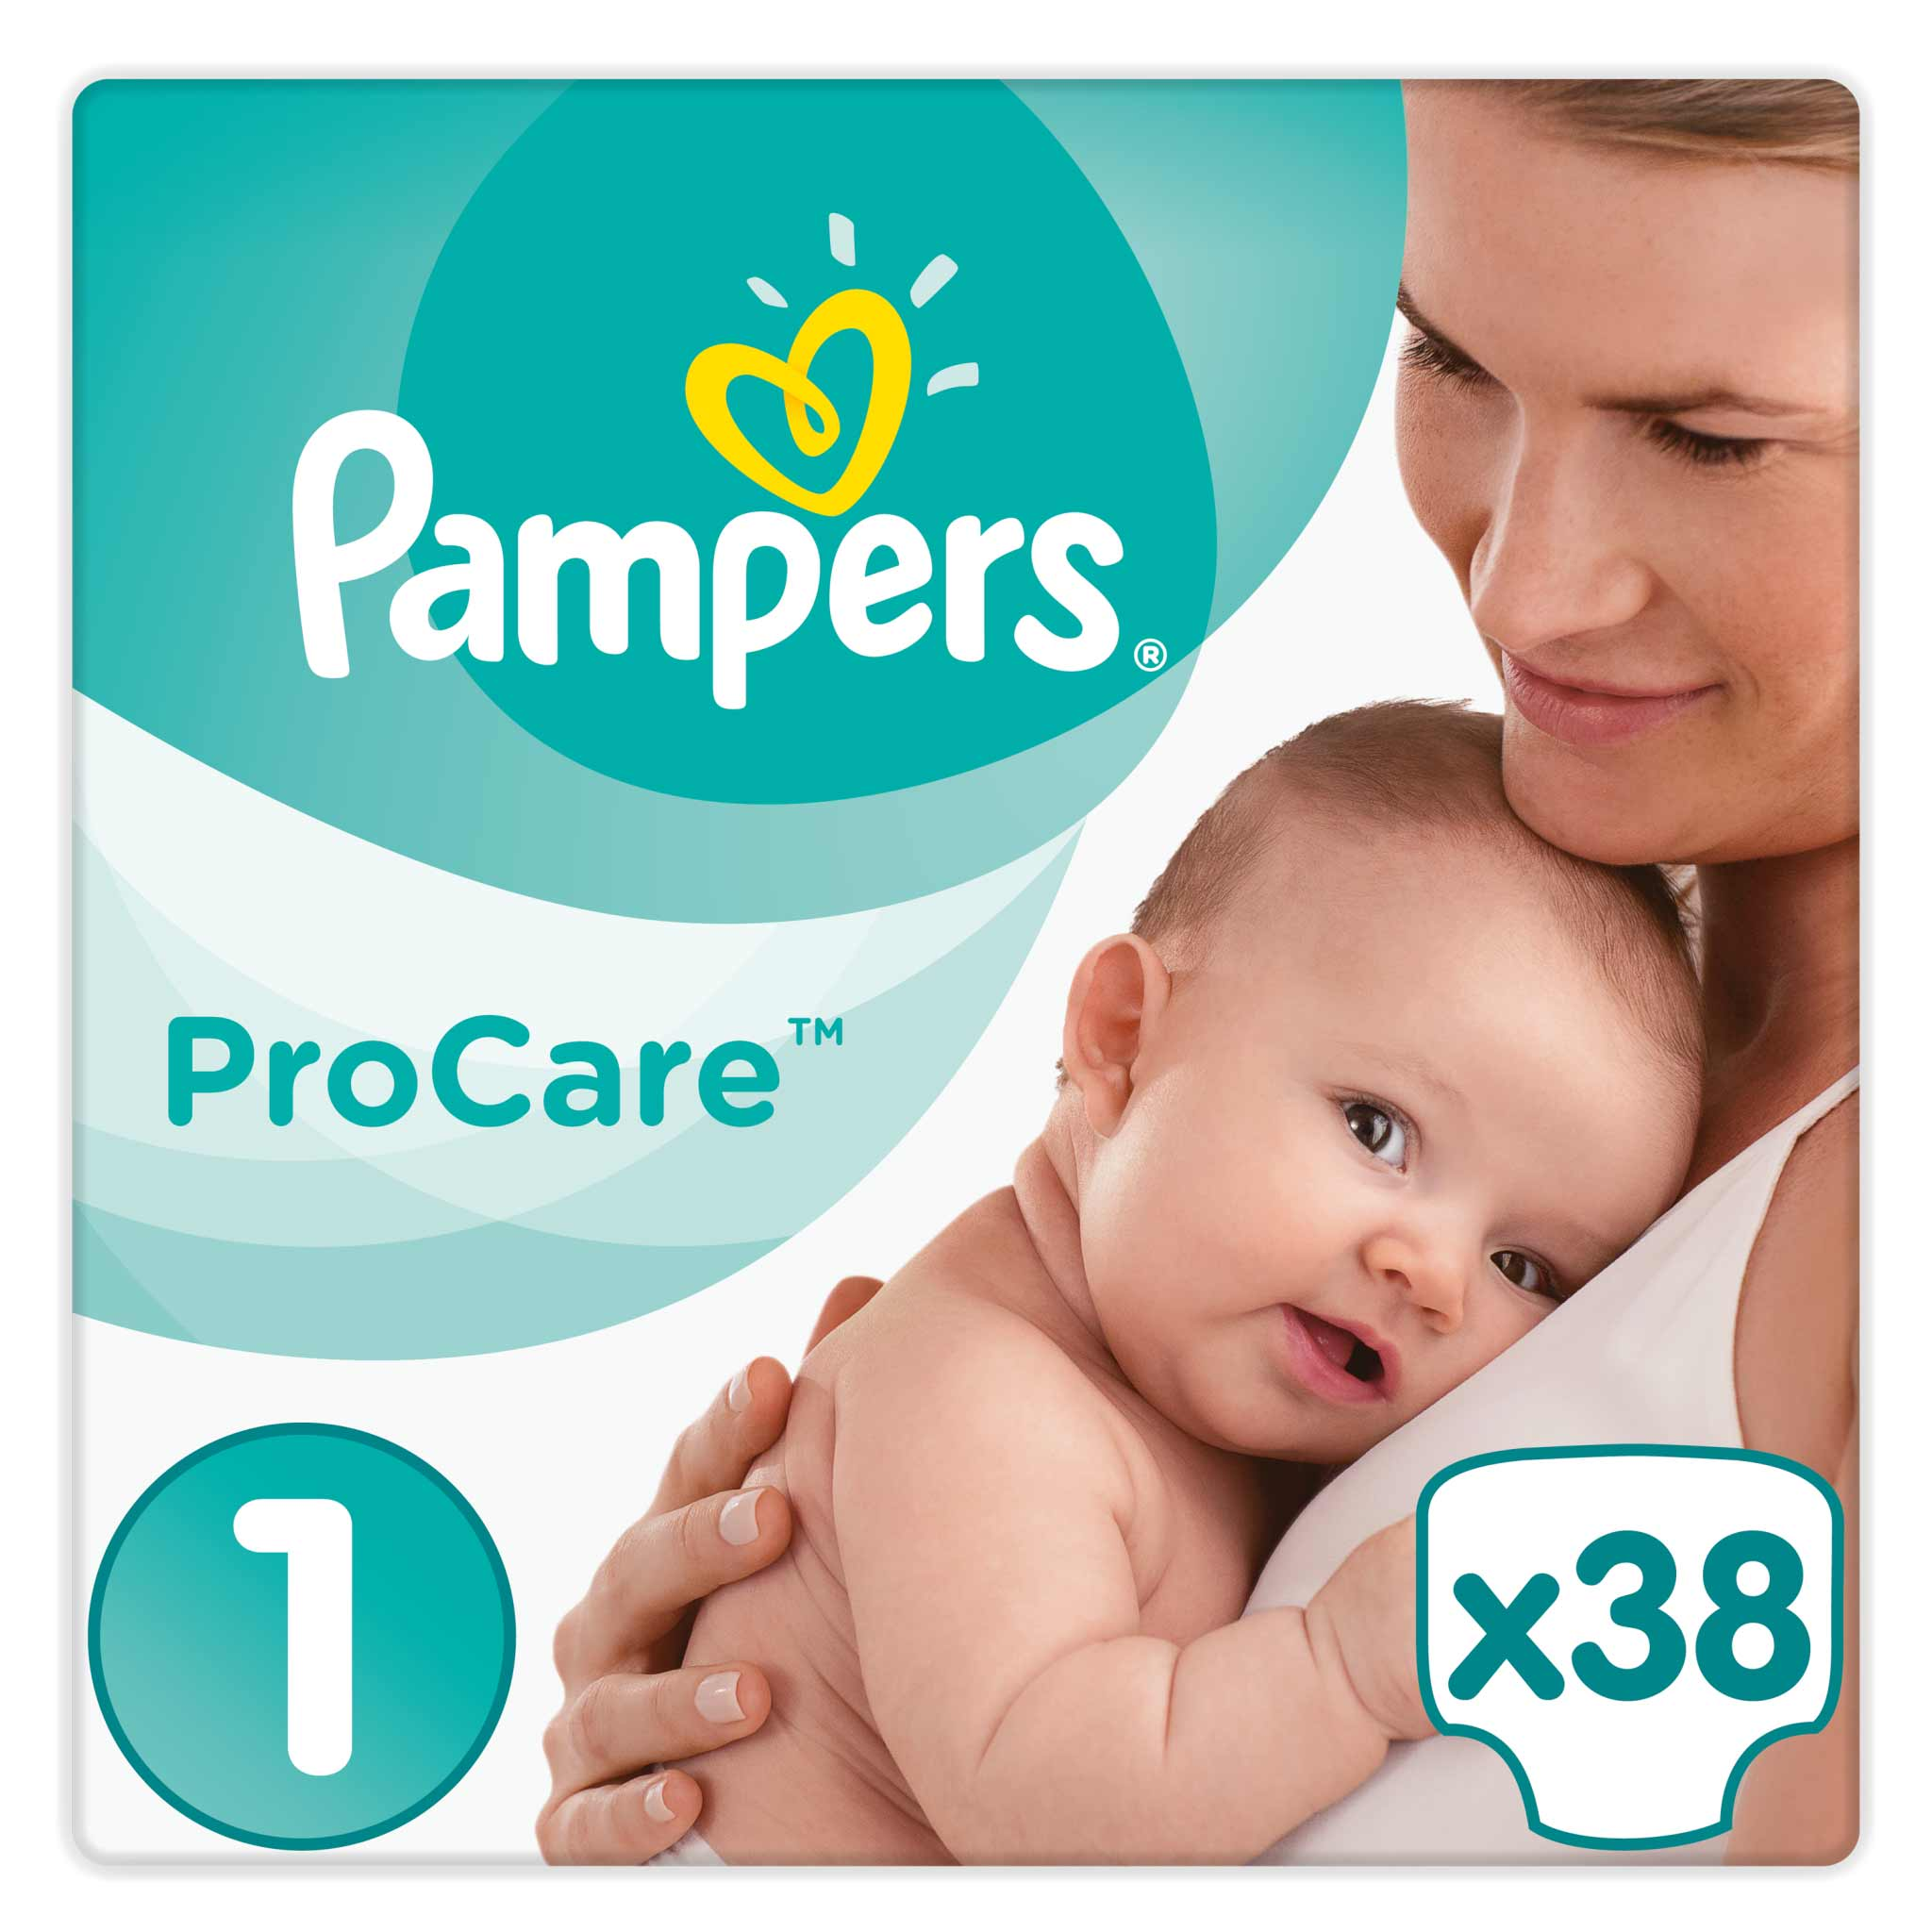 Pampers Procare Premium Protection No.1 (Newborn) 2-5 kg Βρεφικές Πάνες, 38 τεμάχια